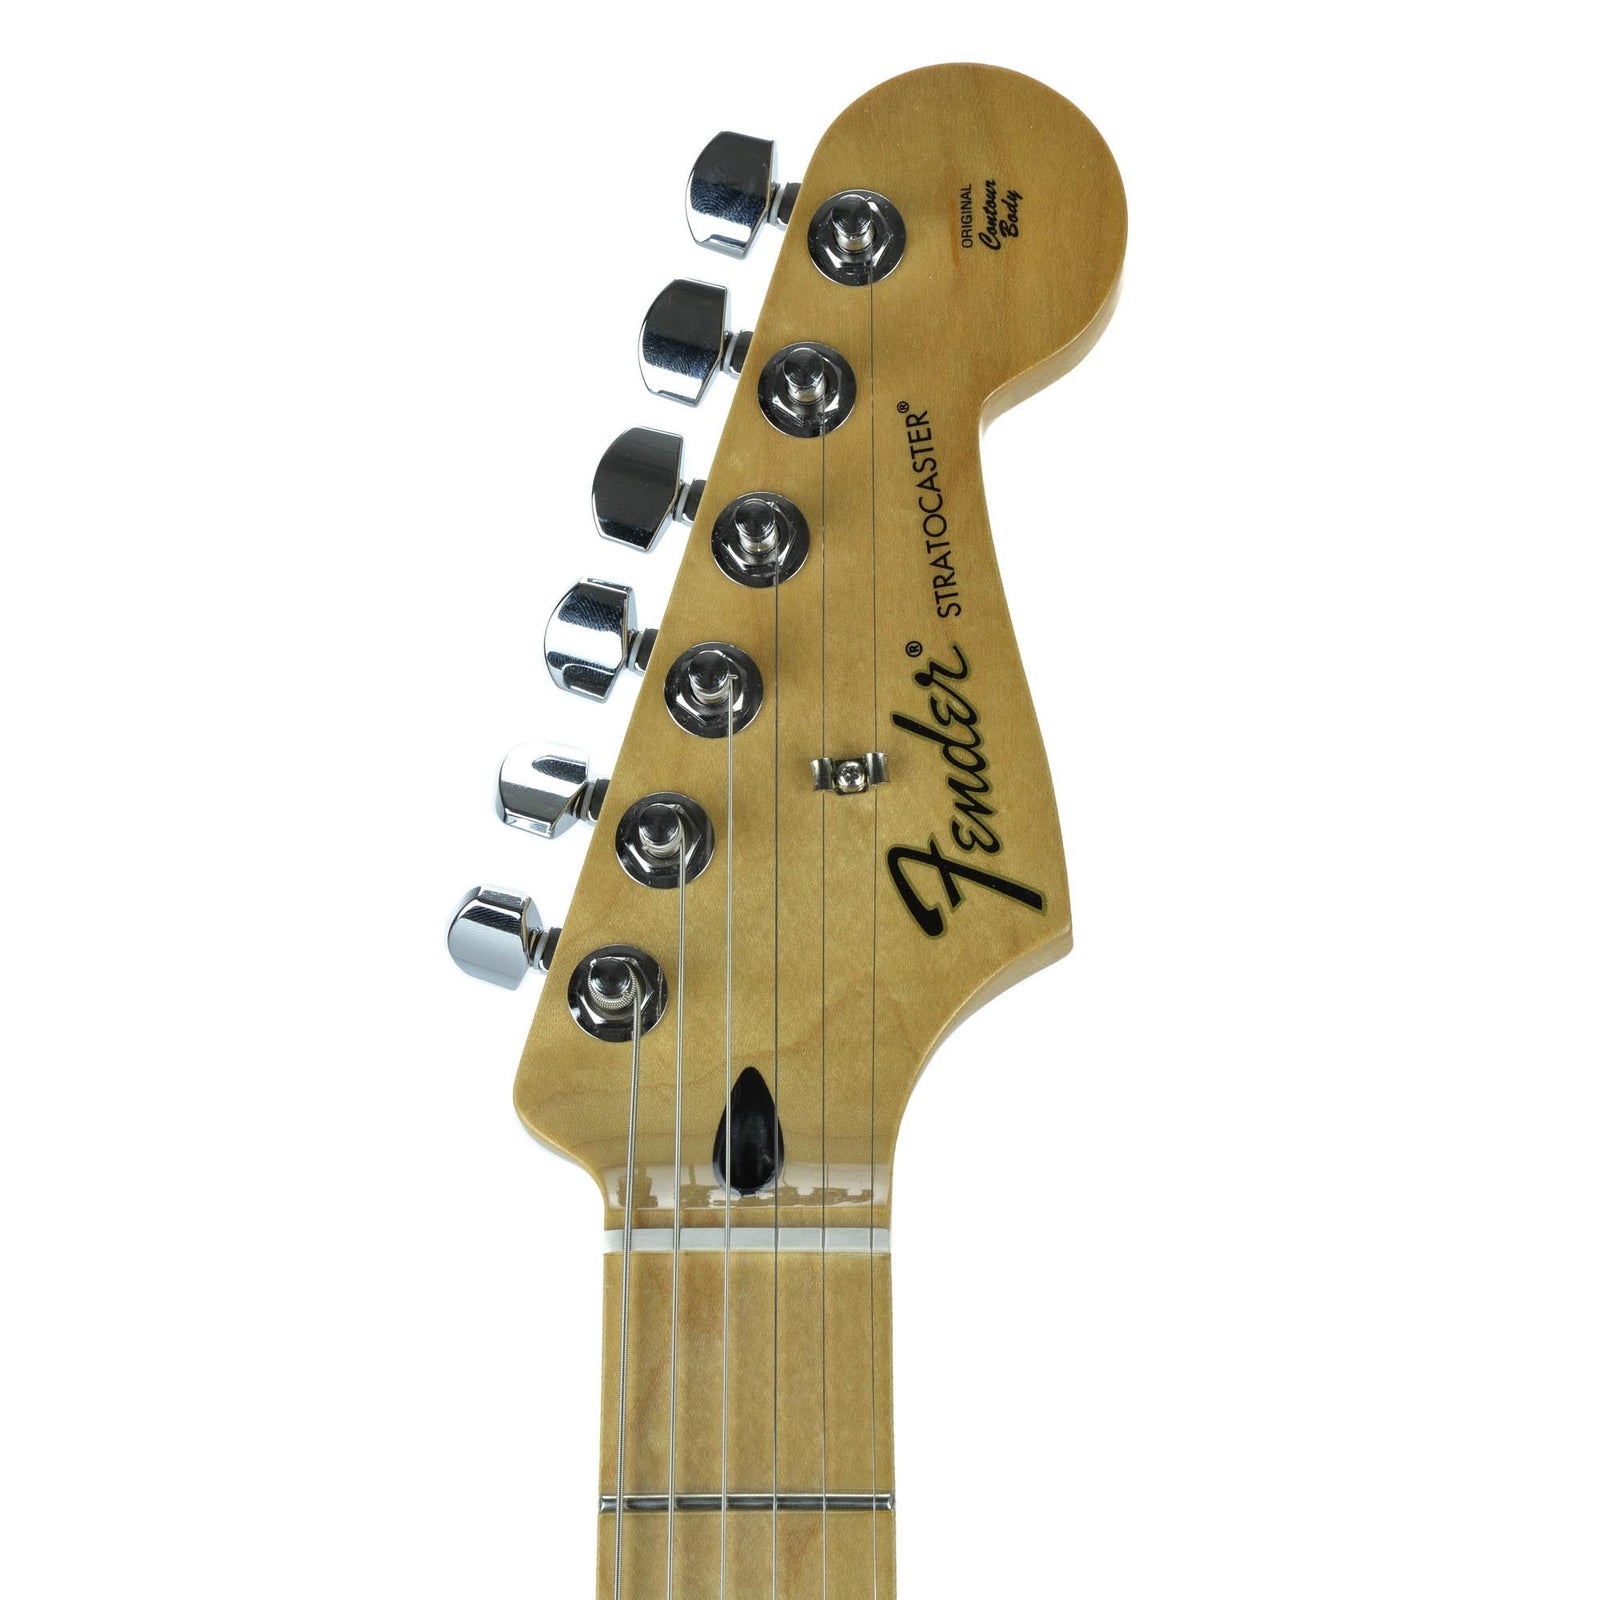 Fender Standard Stratocaster - Maple Fingerboard - Brown Sunburst - Used - Image: 5